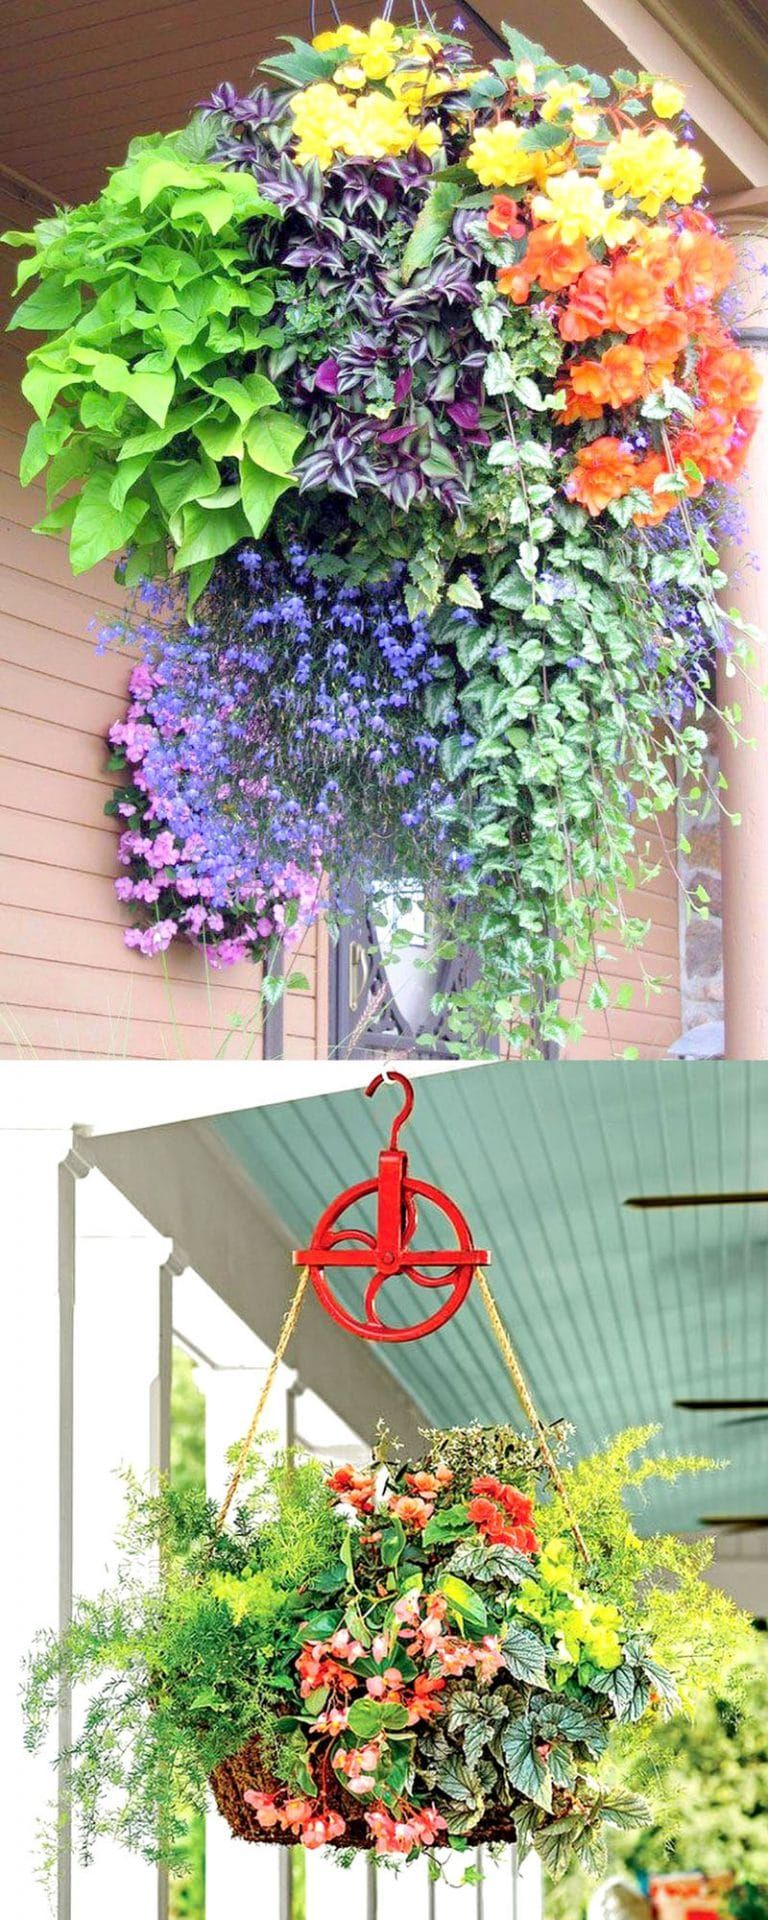 How to Plant Beautiful Flower Hanging Baskets